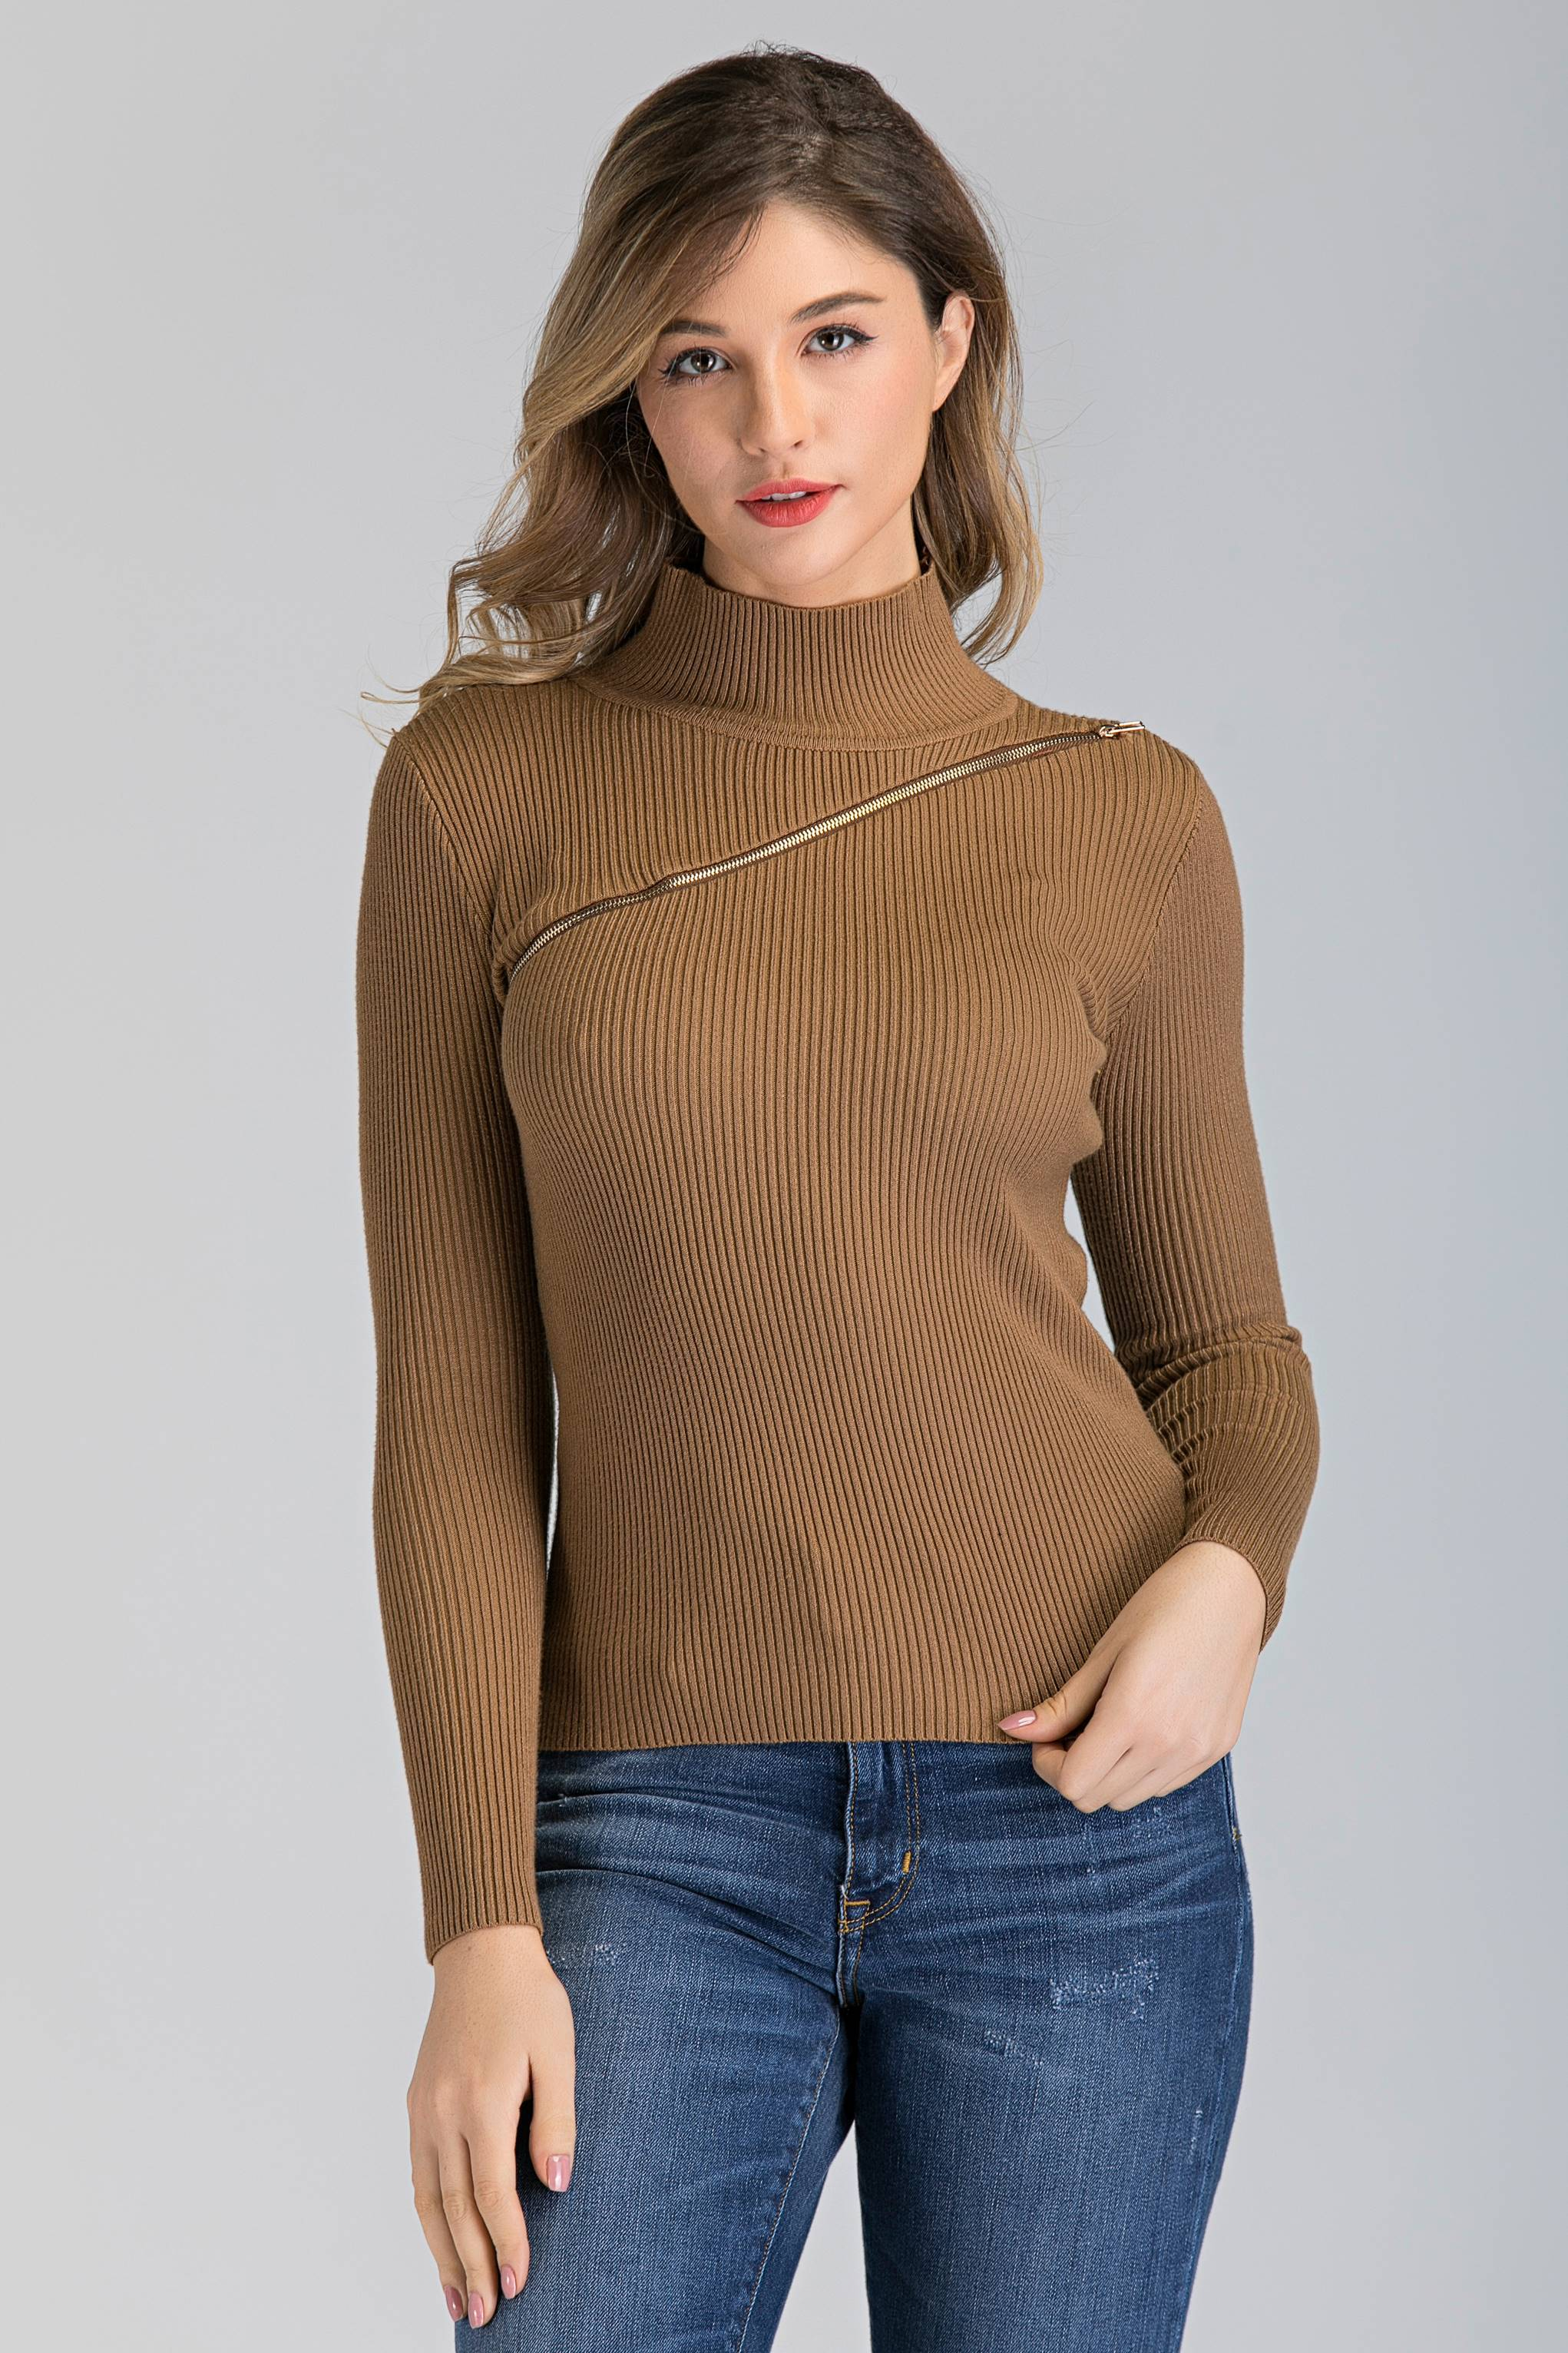 Tan Knit Chest Zip Sleeved Top